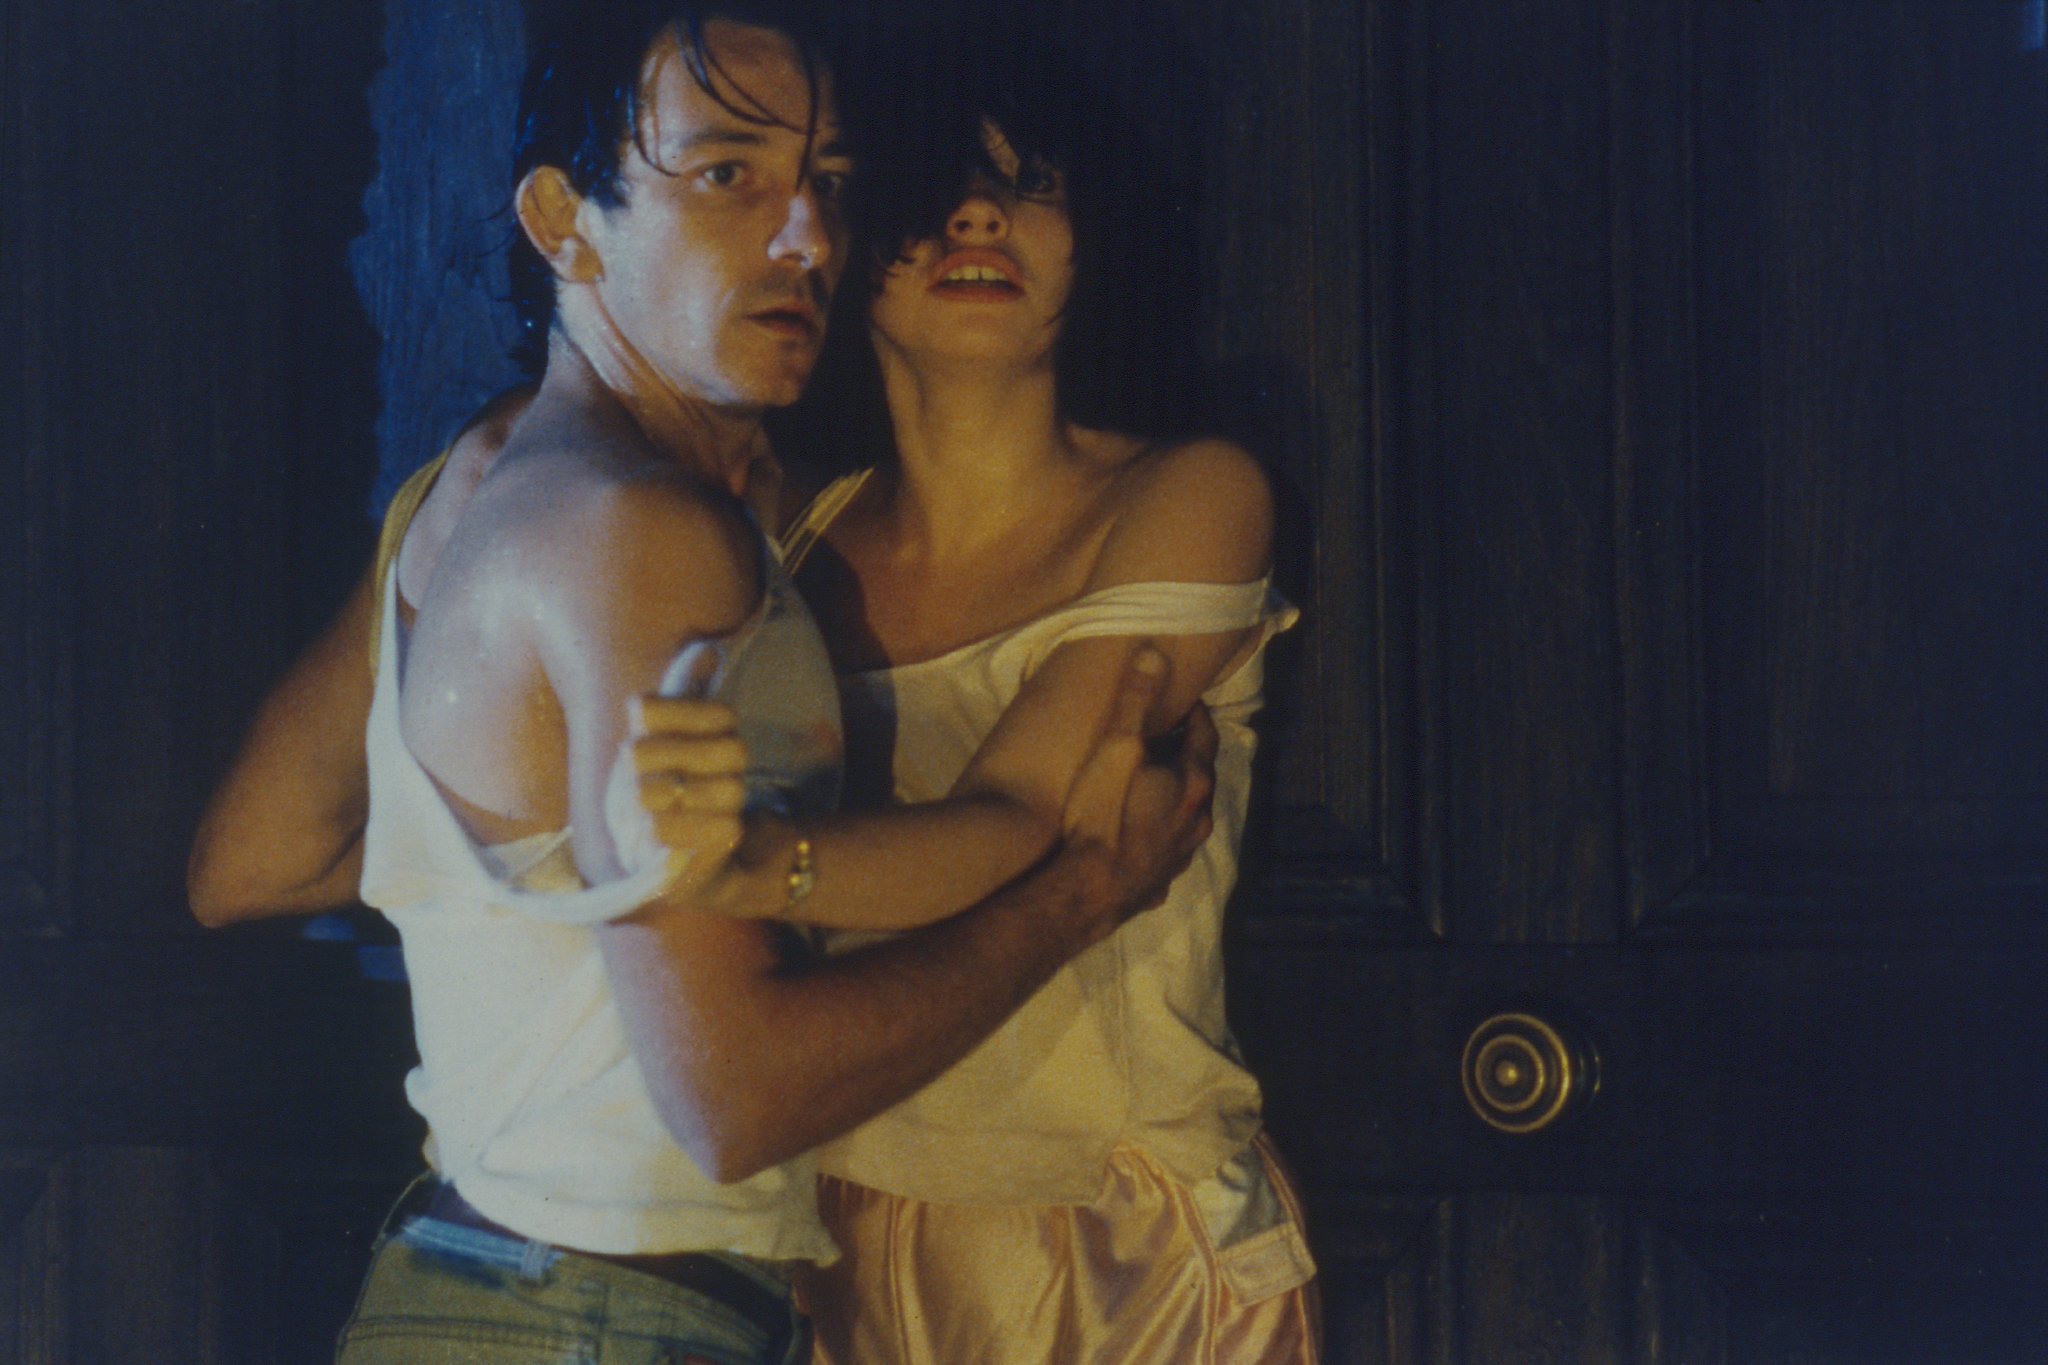 100 sex scenes, Betty Blue